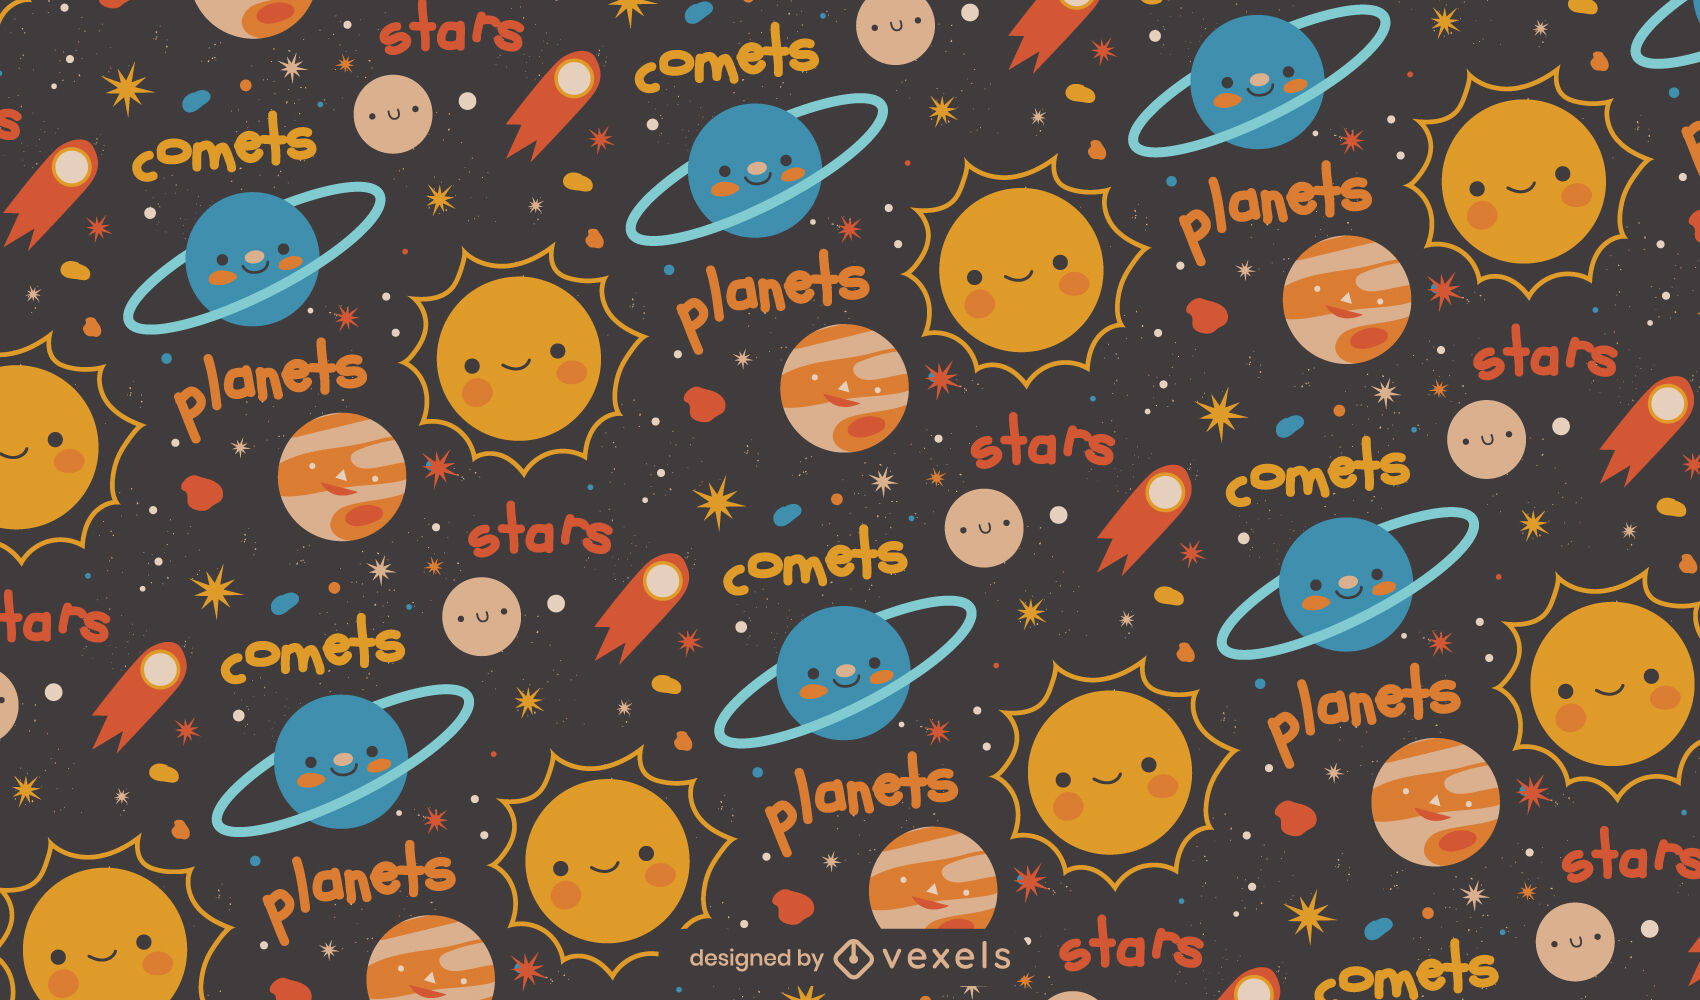 Cute planets and stars space pattern design